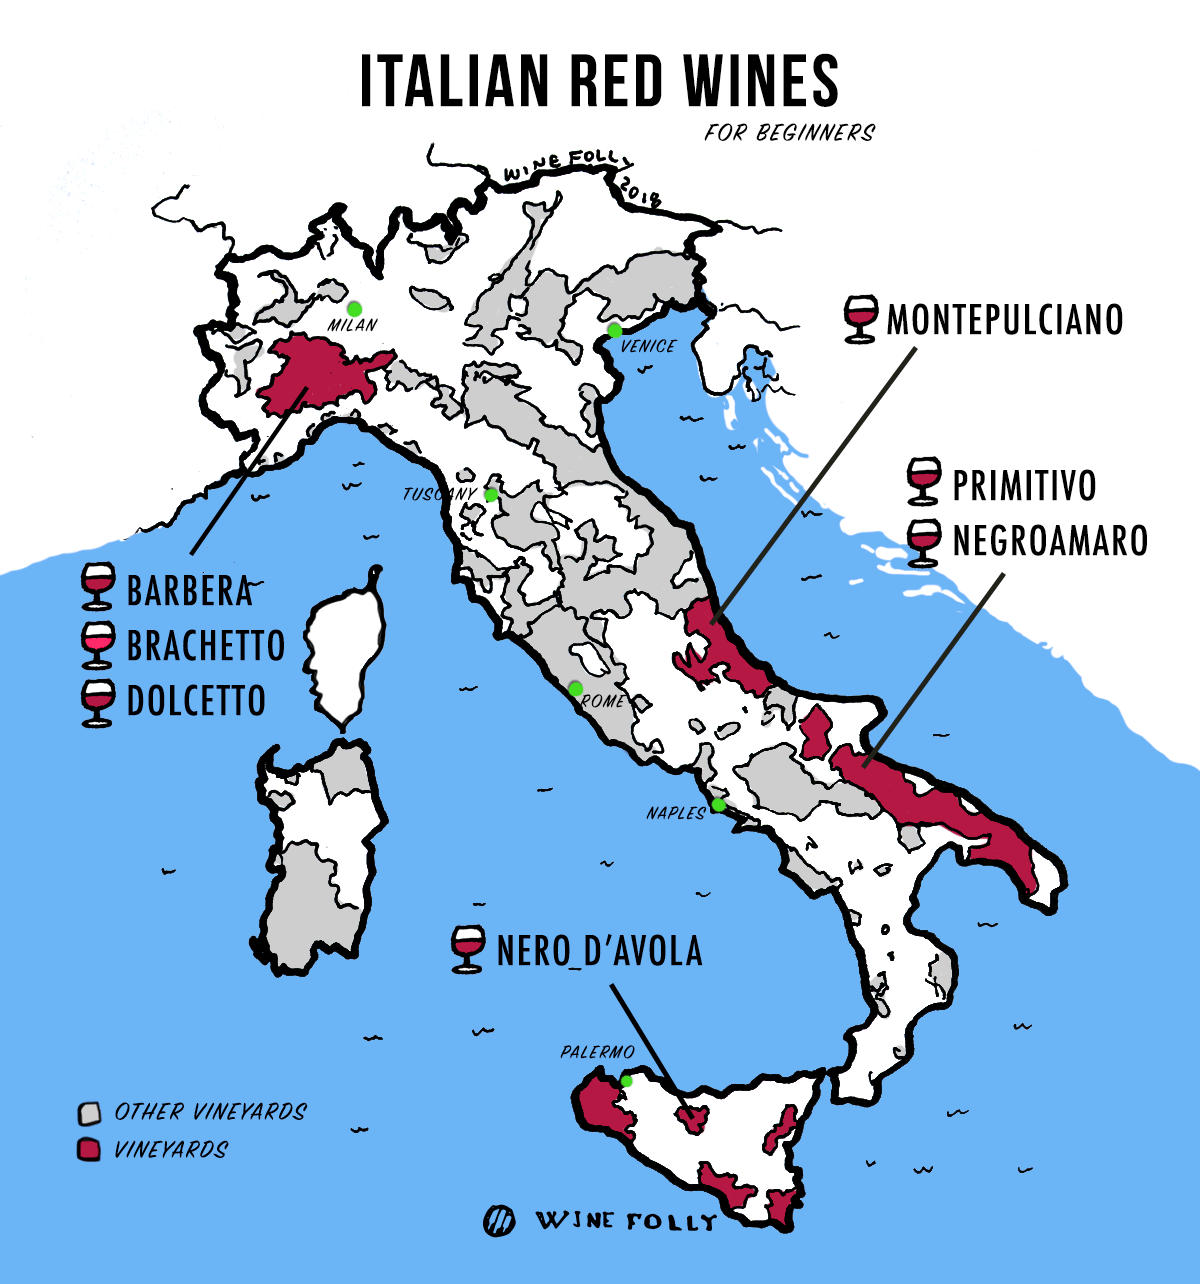 Best Italian Red Wines for Beginners - Illustrated Italy Wine Map by Wine Folly